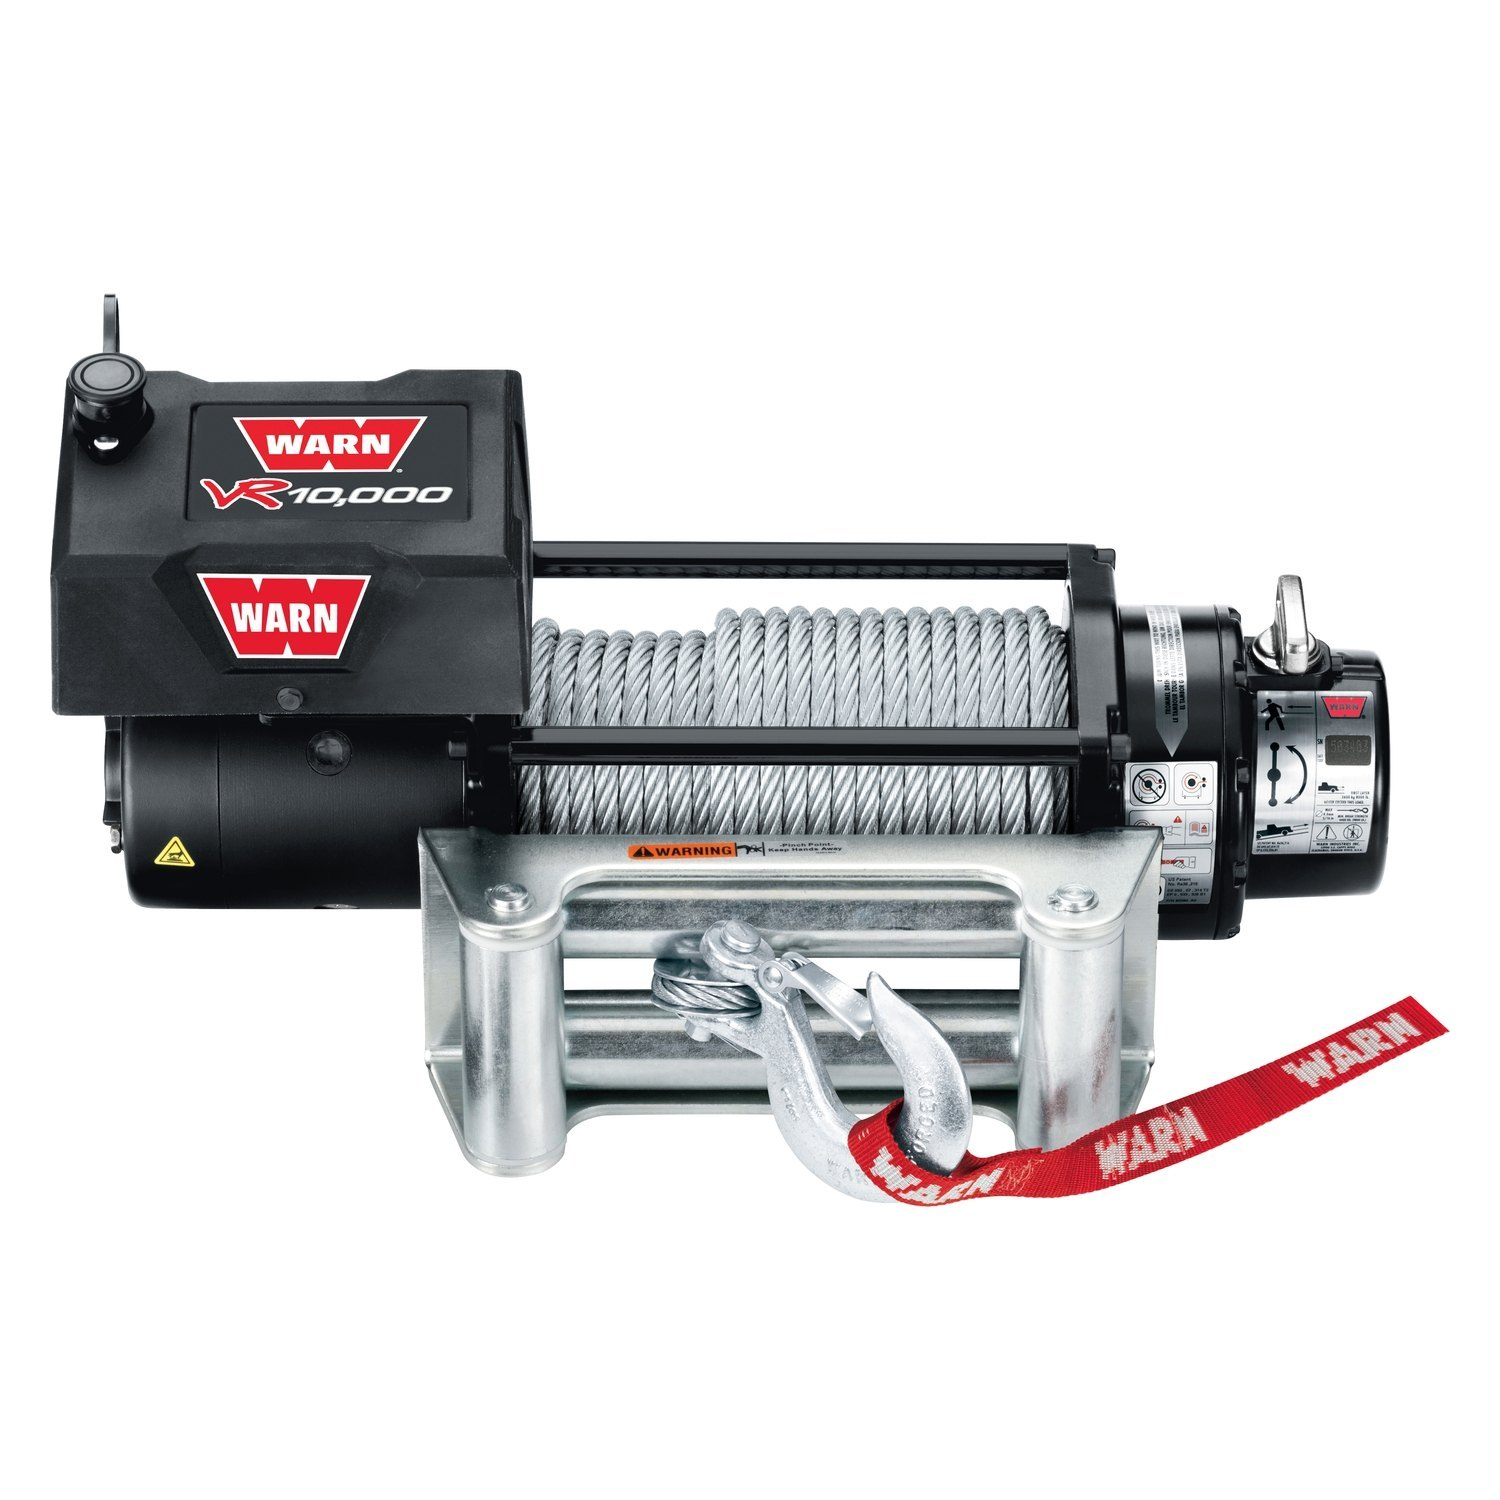 warn winch wiring diagram a2000 mercruiser alternator 86255 10 000 lbs vr entry level series self